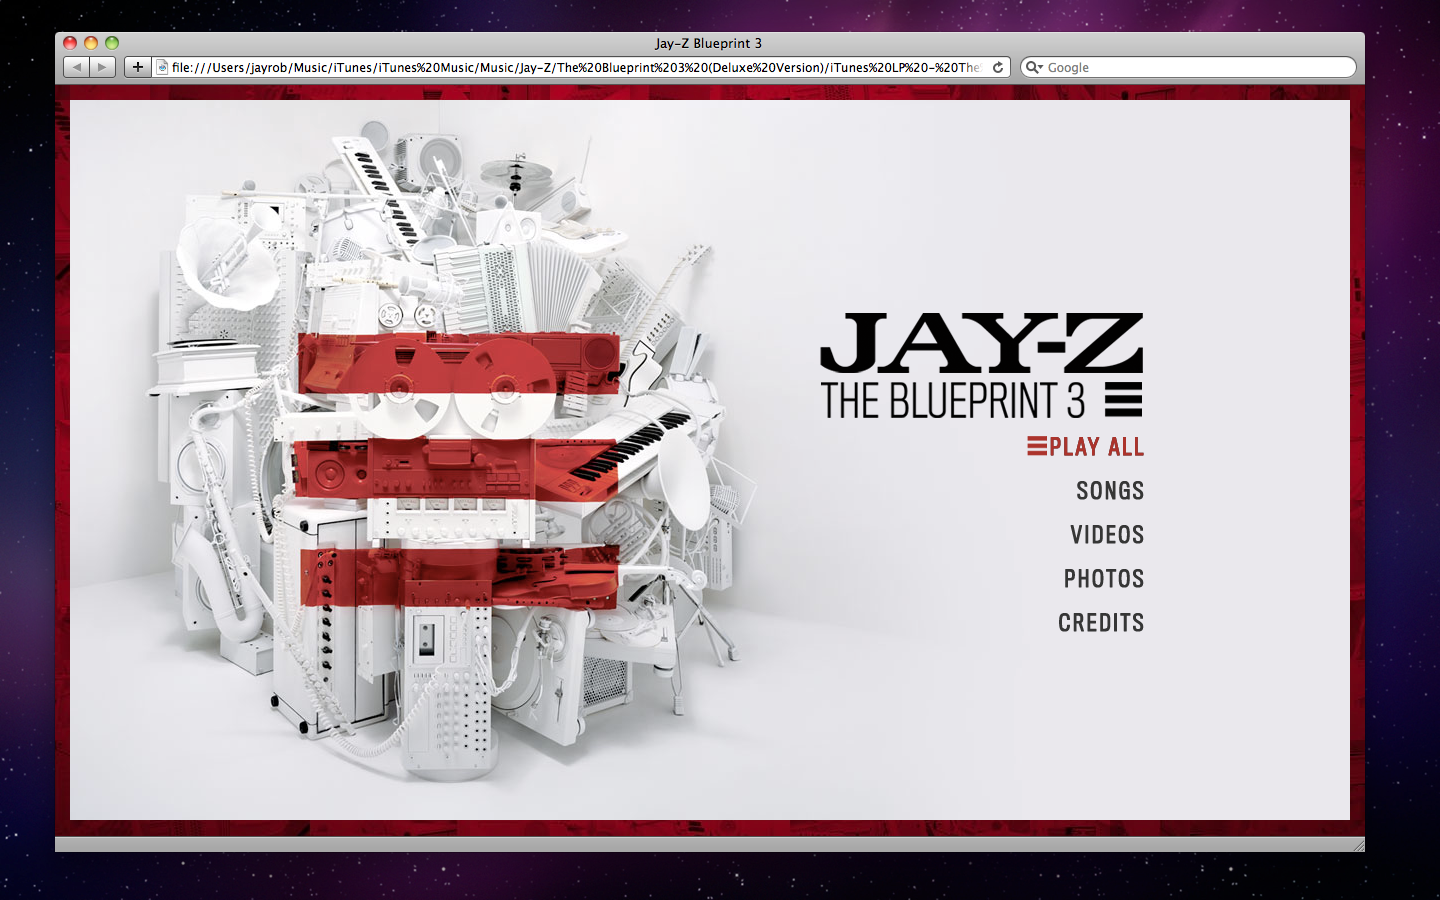 Itunes jay robinson jayrobinson itunes lp jay z the blueprint 3 when viewed in safari 403 malvernweather Images